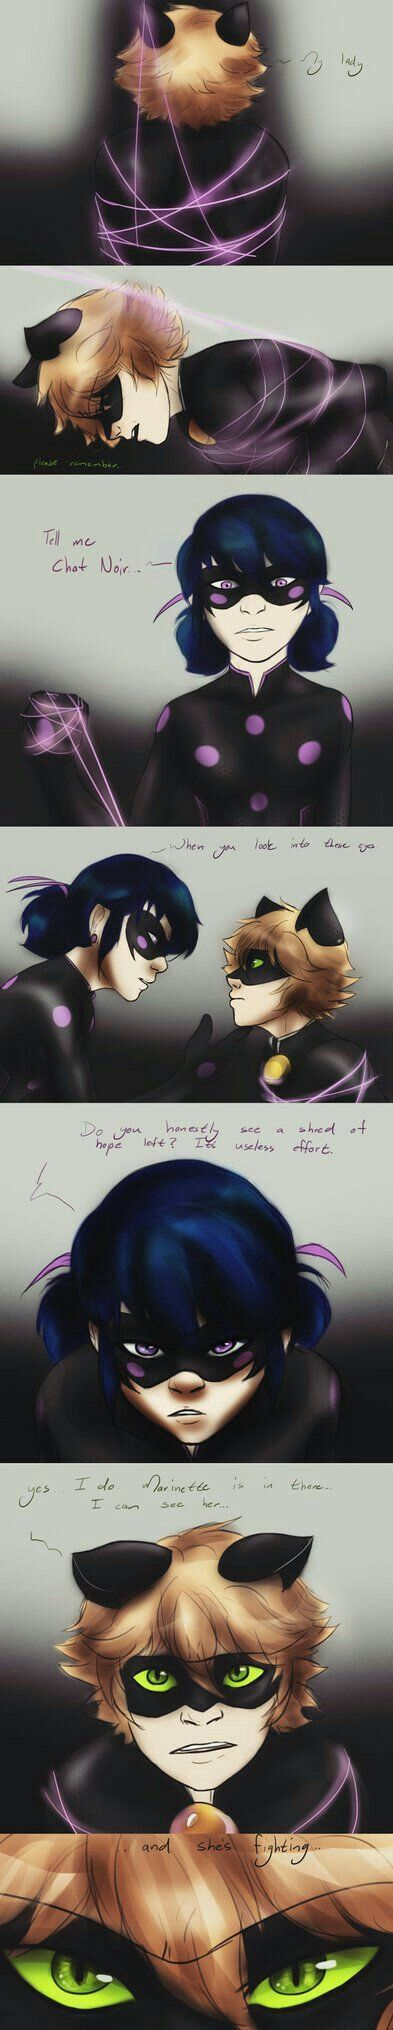 Pin by Maklowe on Lady and cat in 2019 | Miraculous ladybug, Ladybug